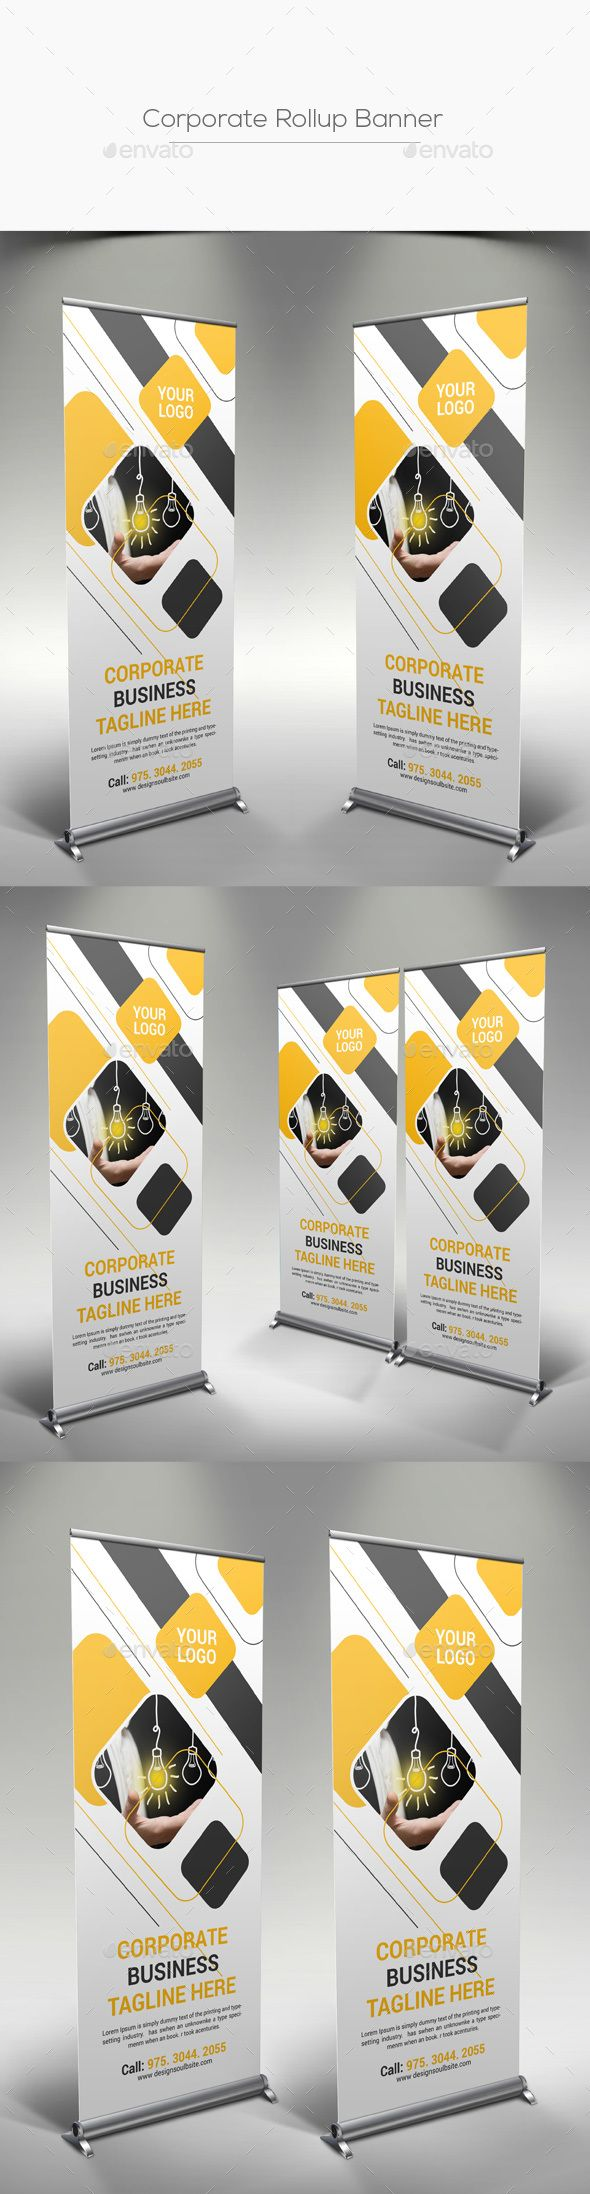 Corporate Rollup Banner Template PSD